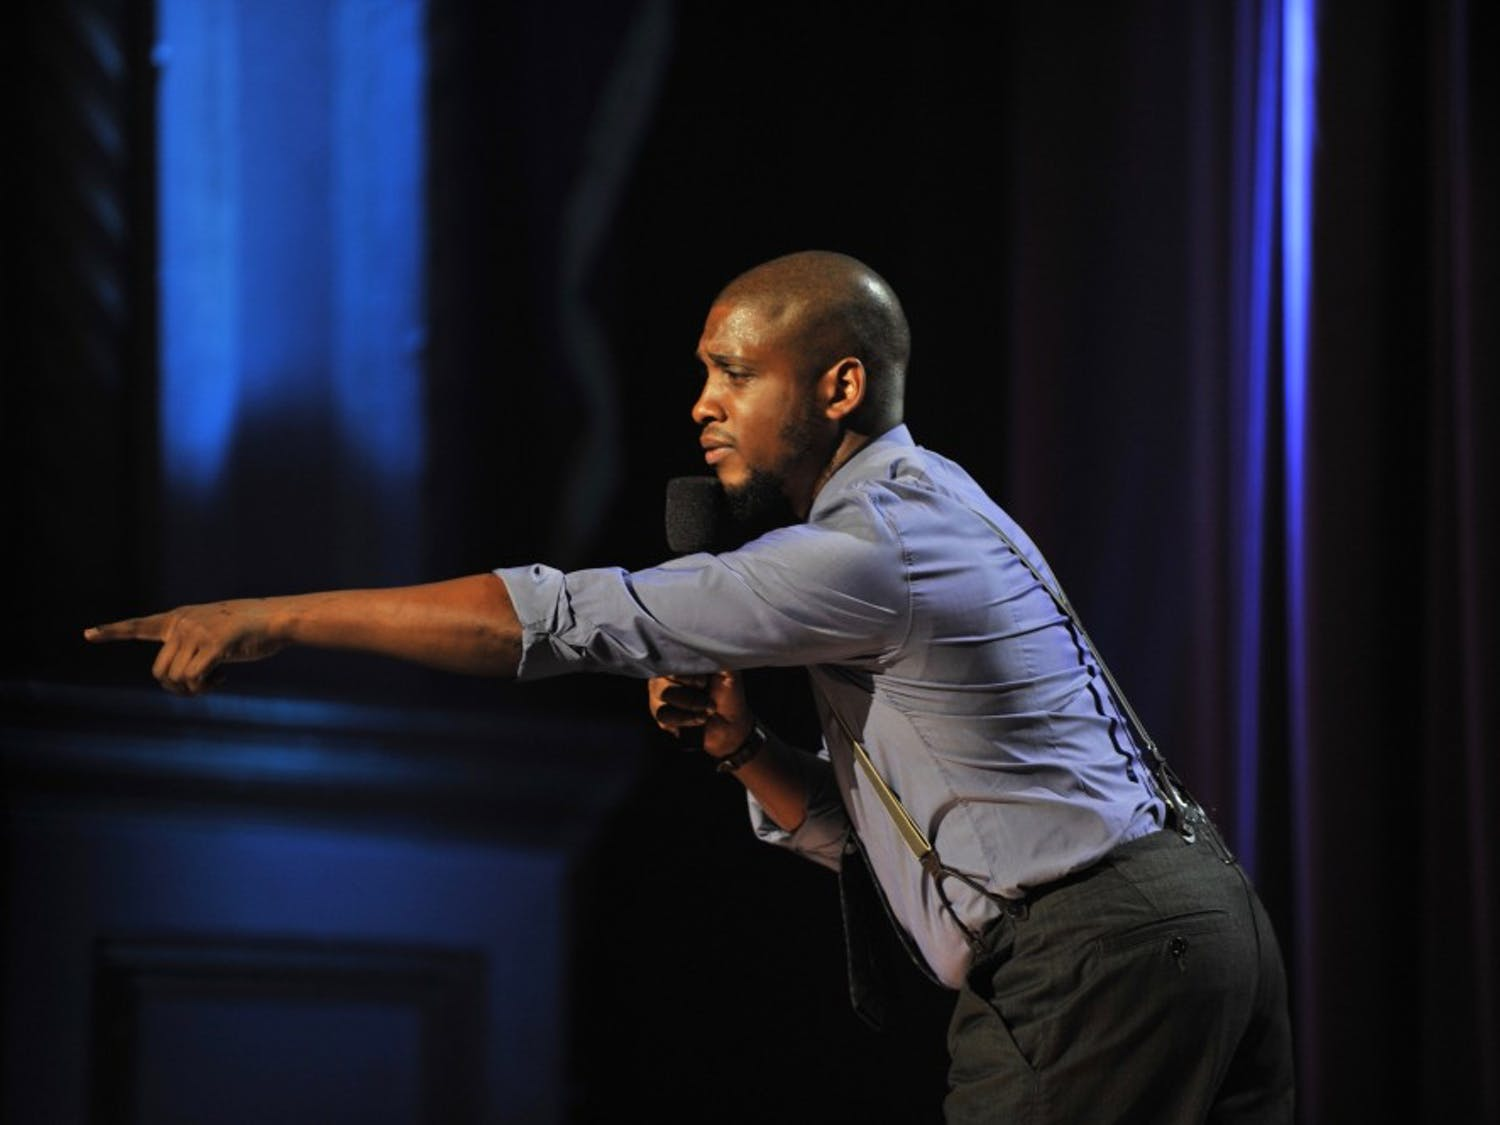 Siddiq will be performing in Madison this Thursday, Friday and Saturdayat Comedy Club on State.